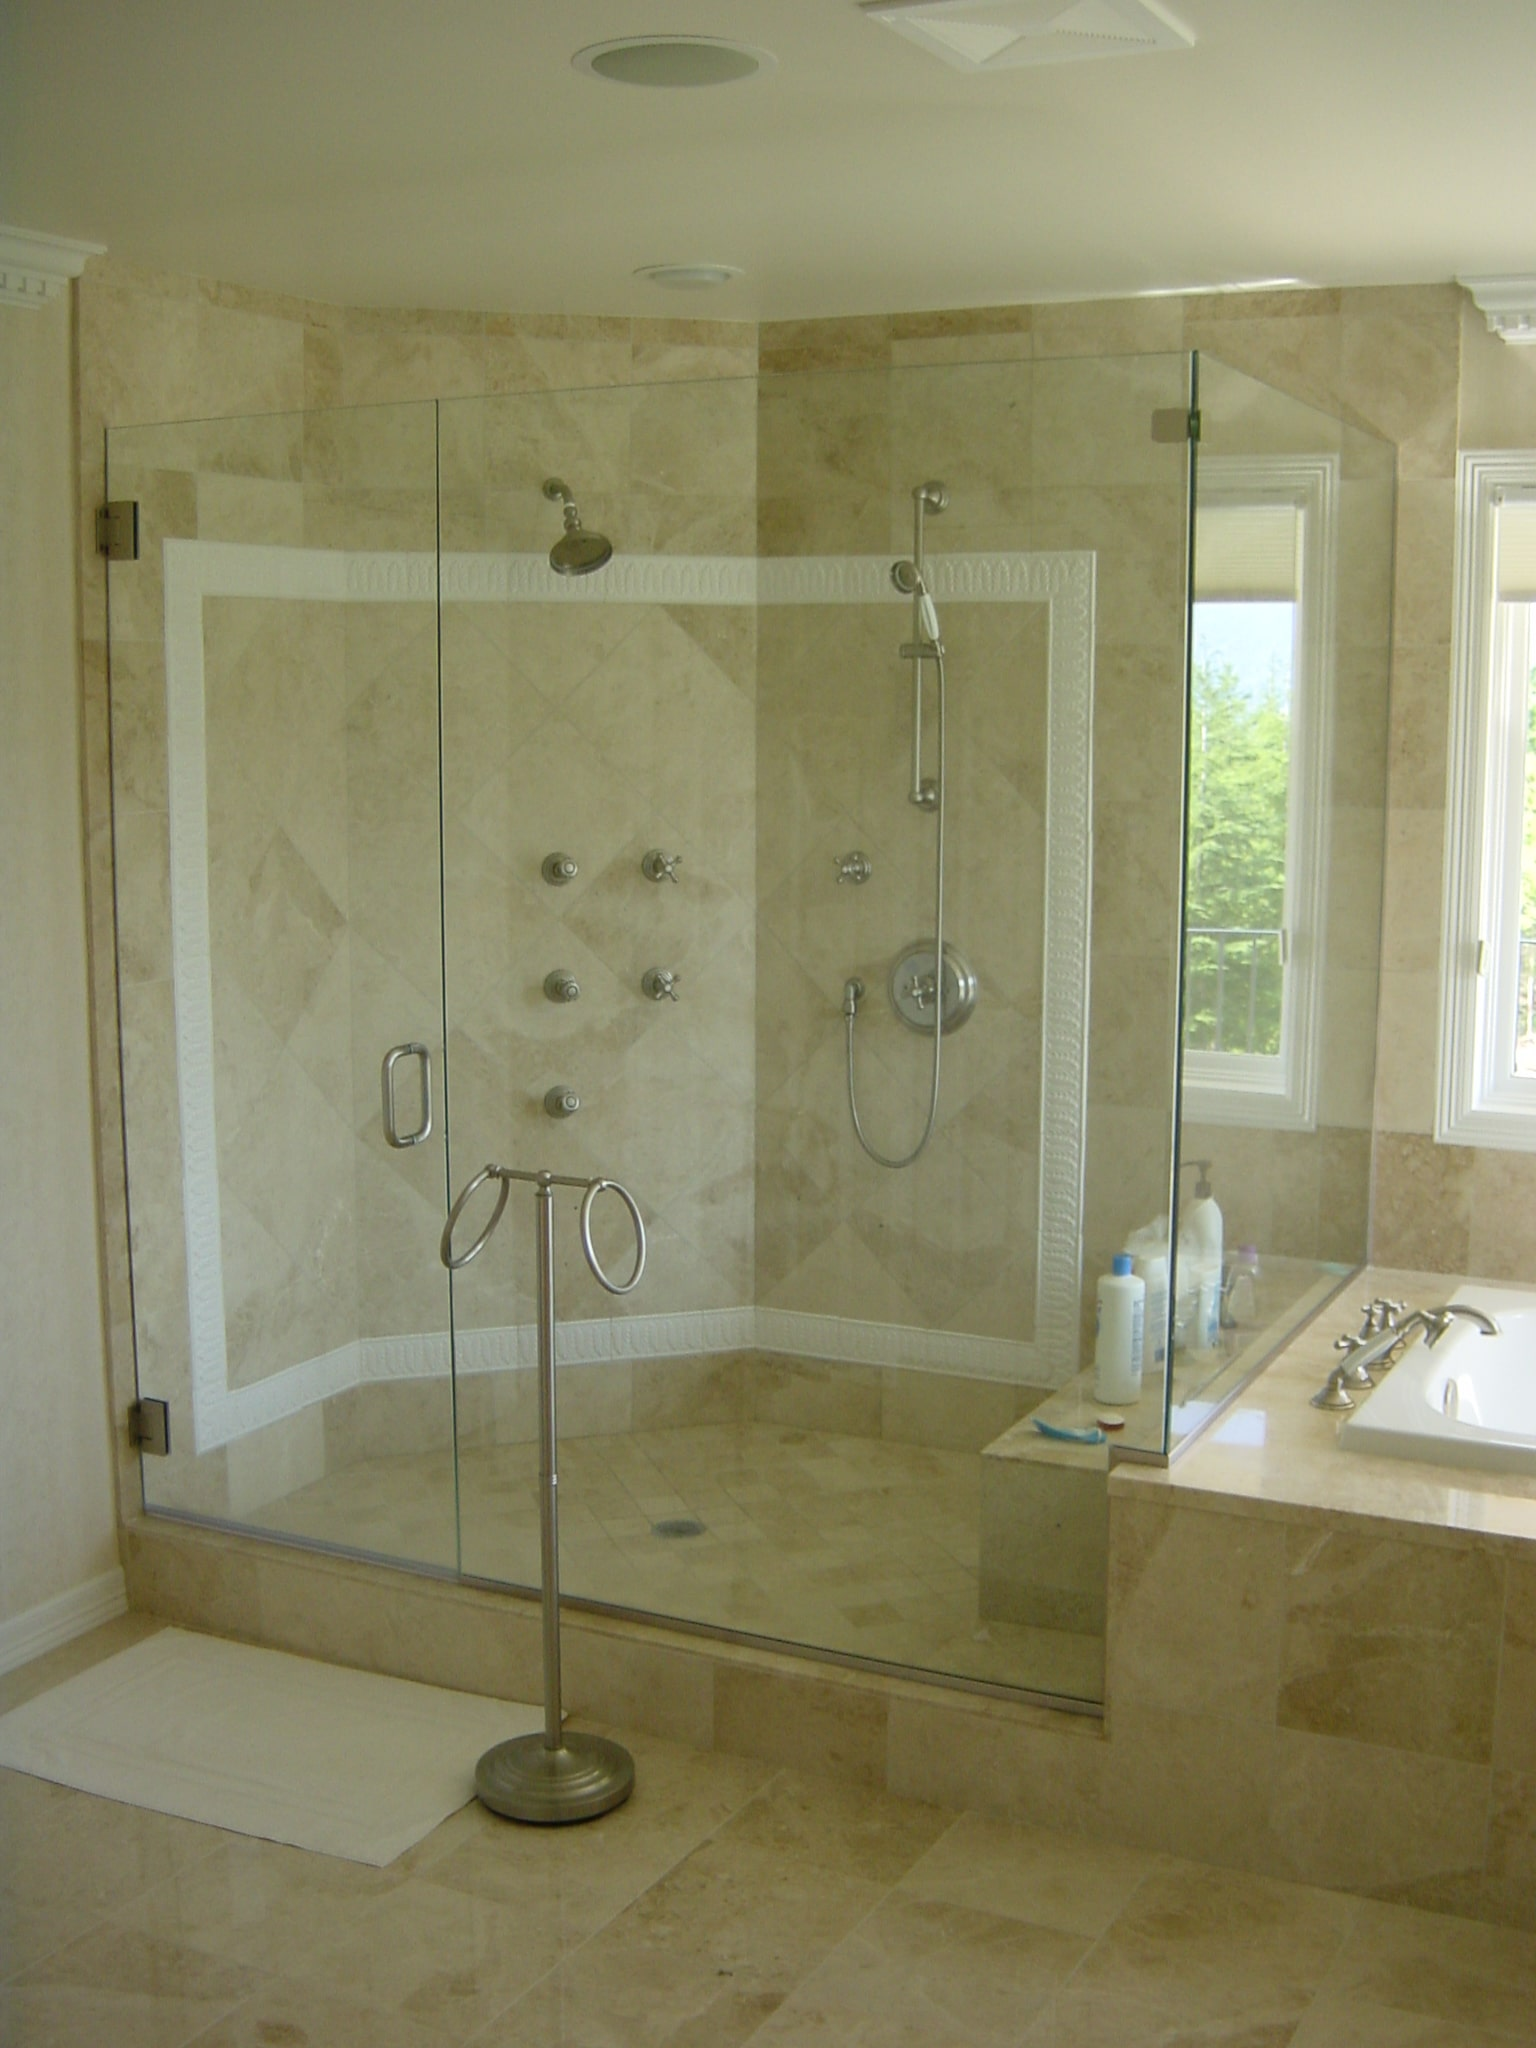 & Shower Glass - Harbor All Glass \u0026 Mirror Inc.